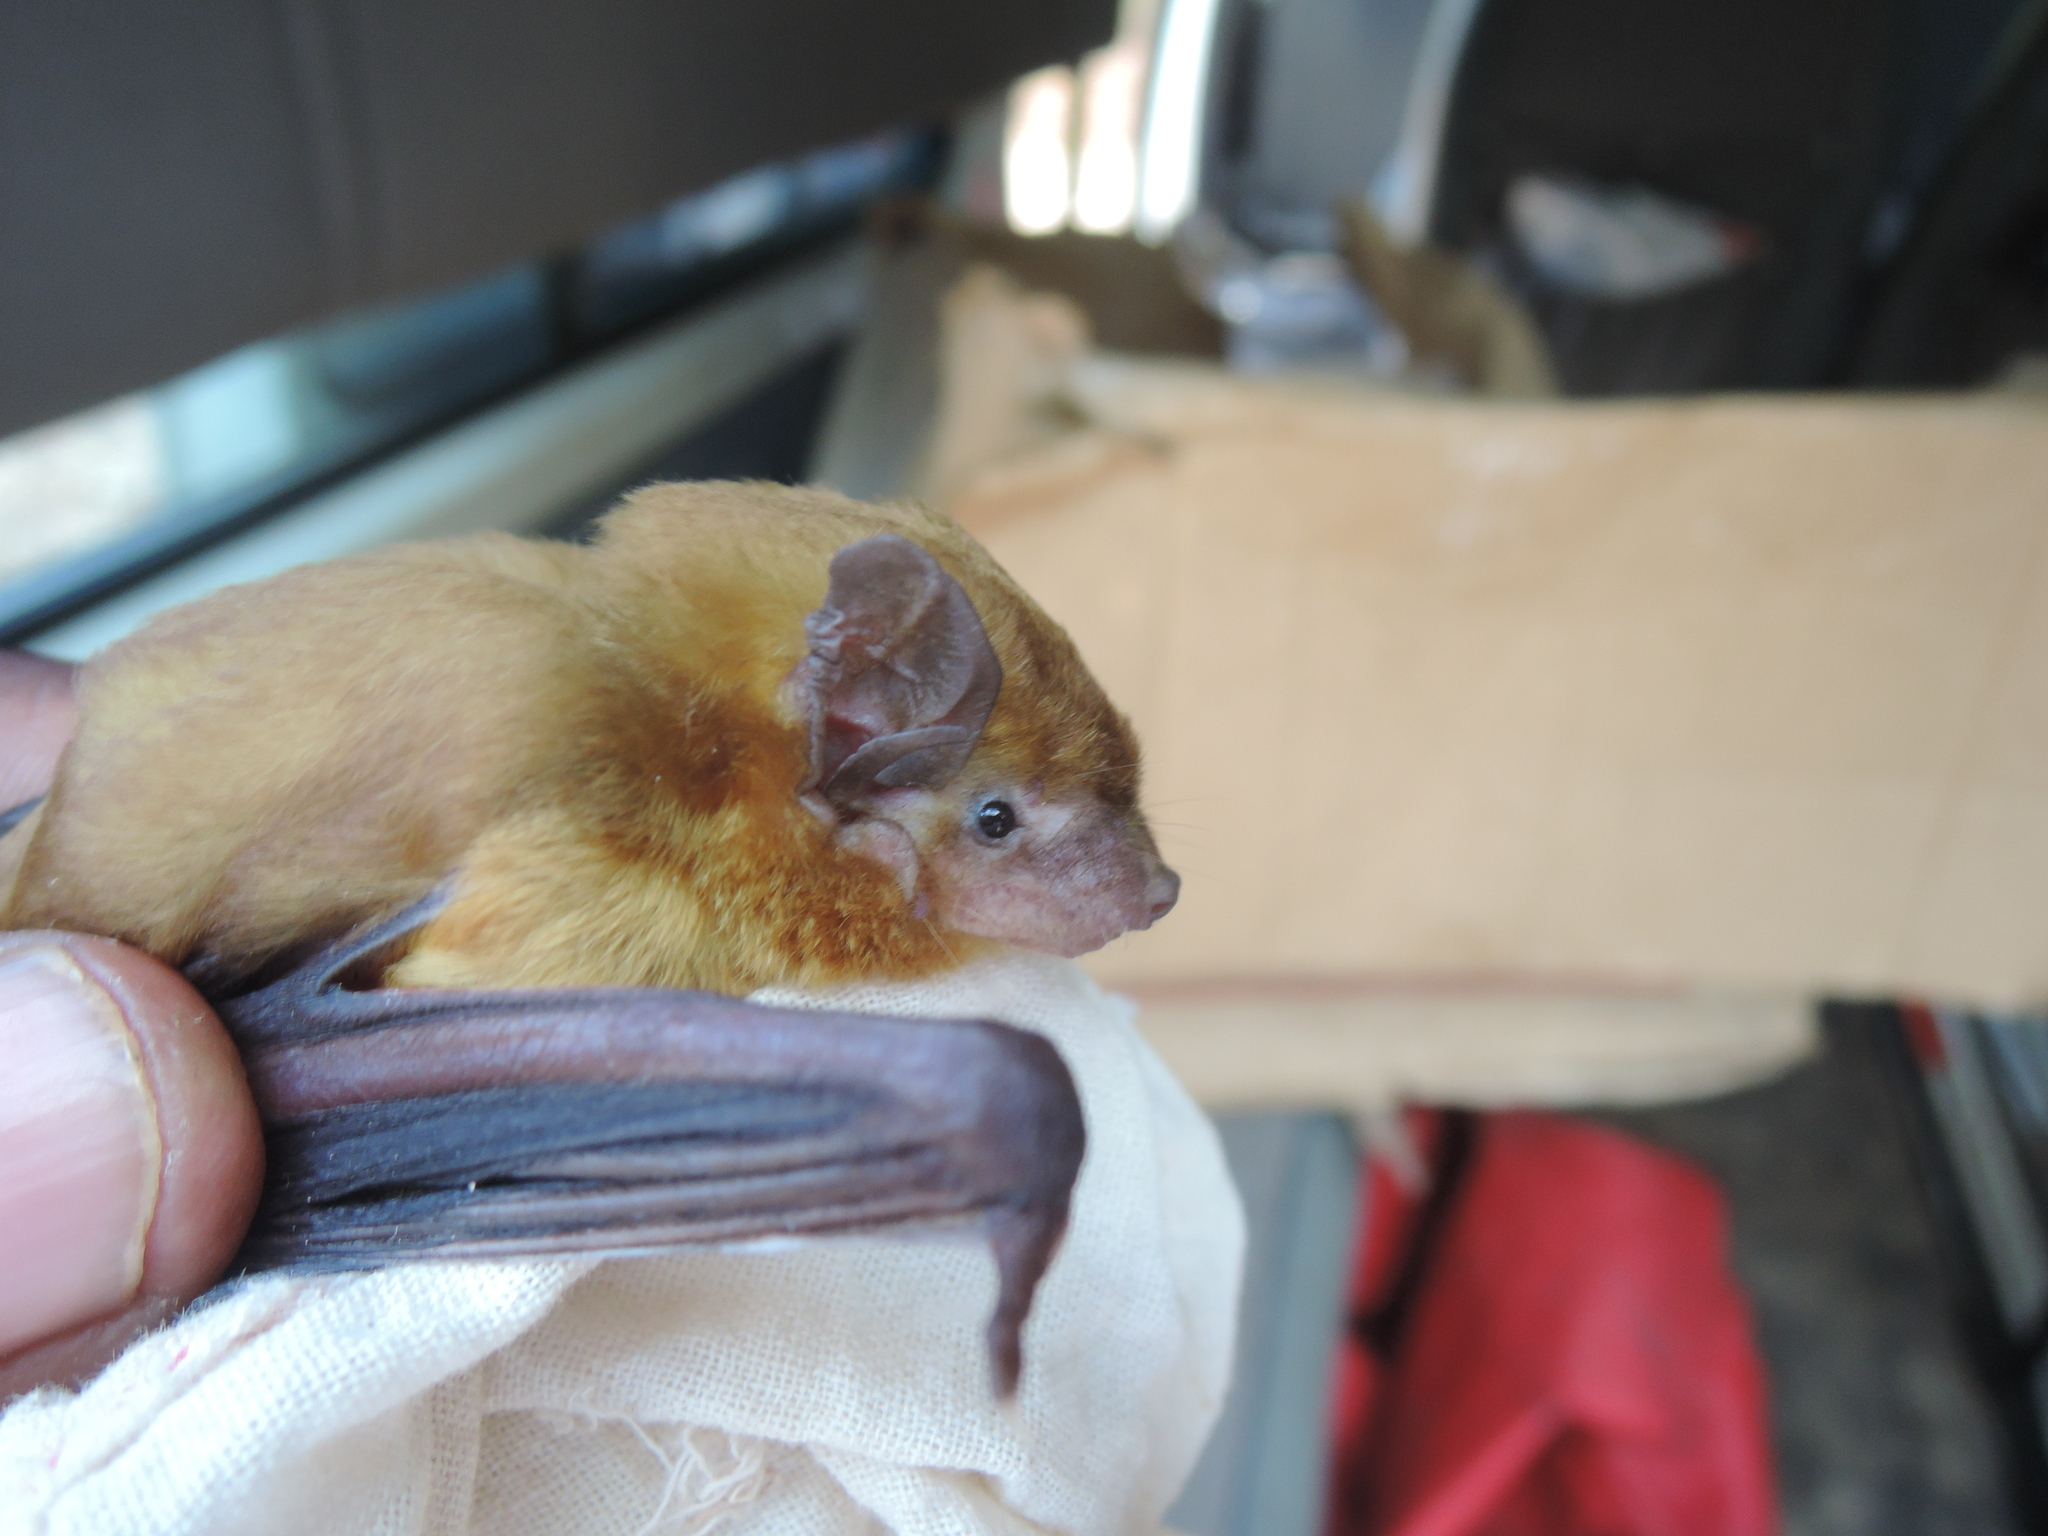 Image of Green House Bat